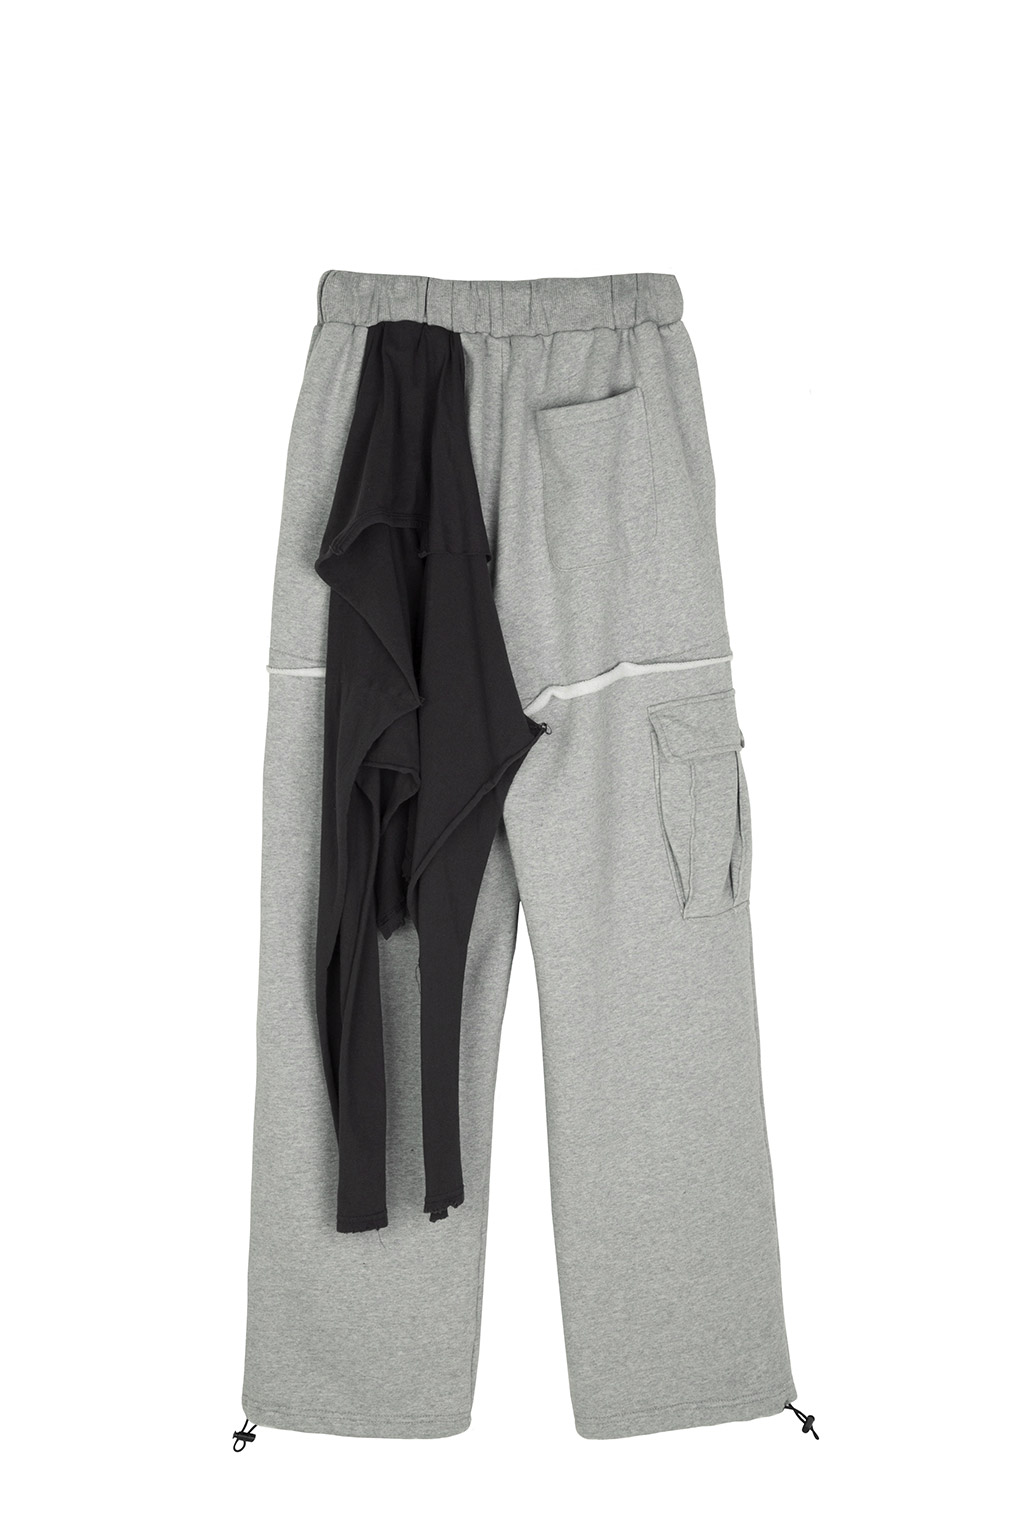 shirts docking sweatpants - melange